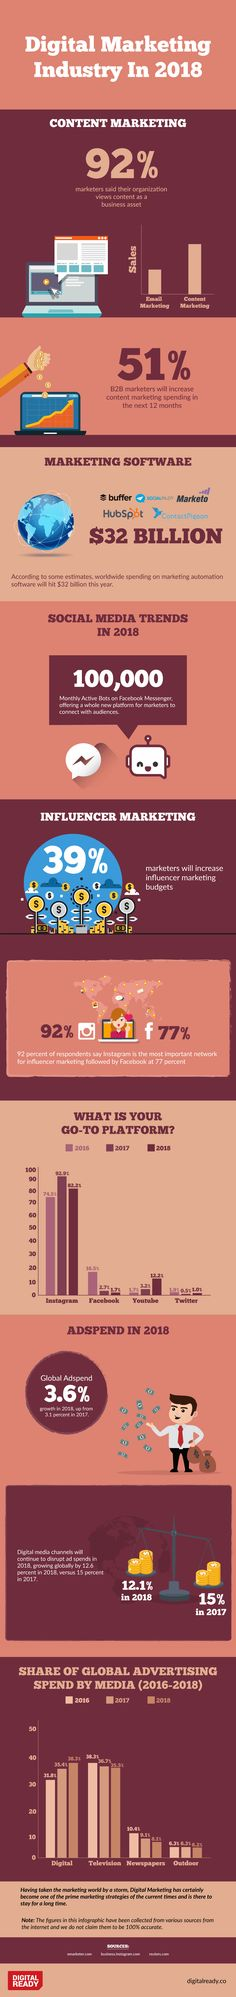 Digital Marketing Industry in 2018,  content marketing, increase the spend in marketing software, influencer marketing